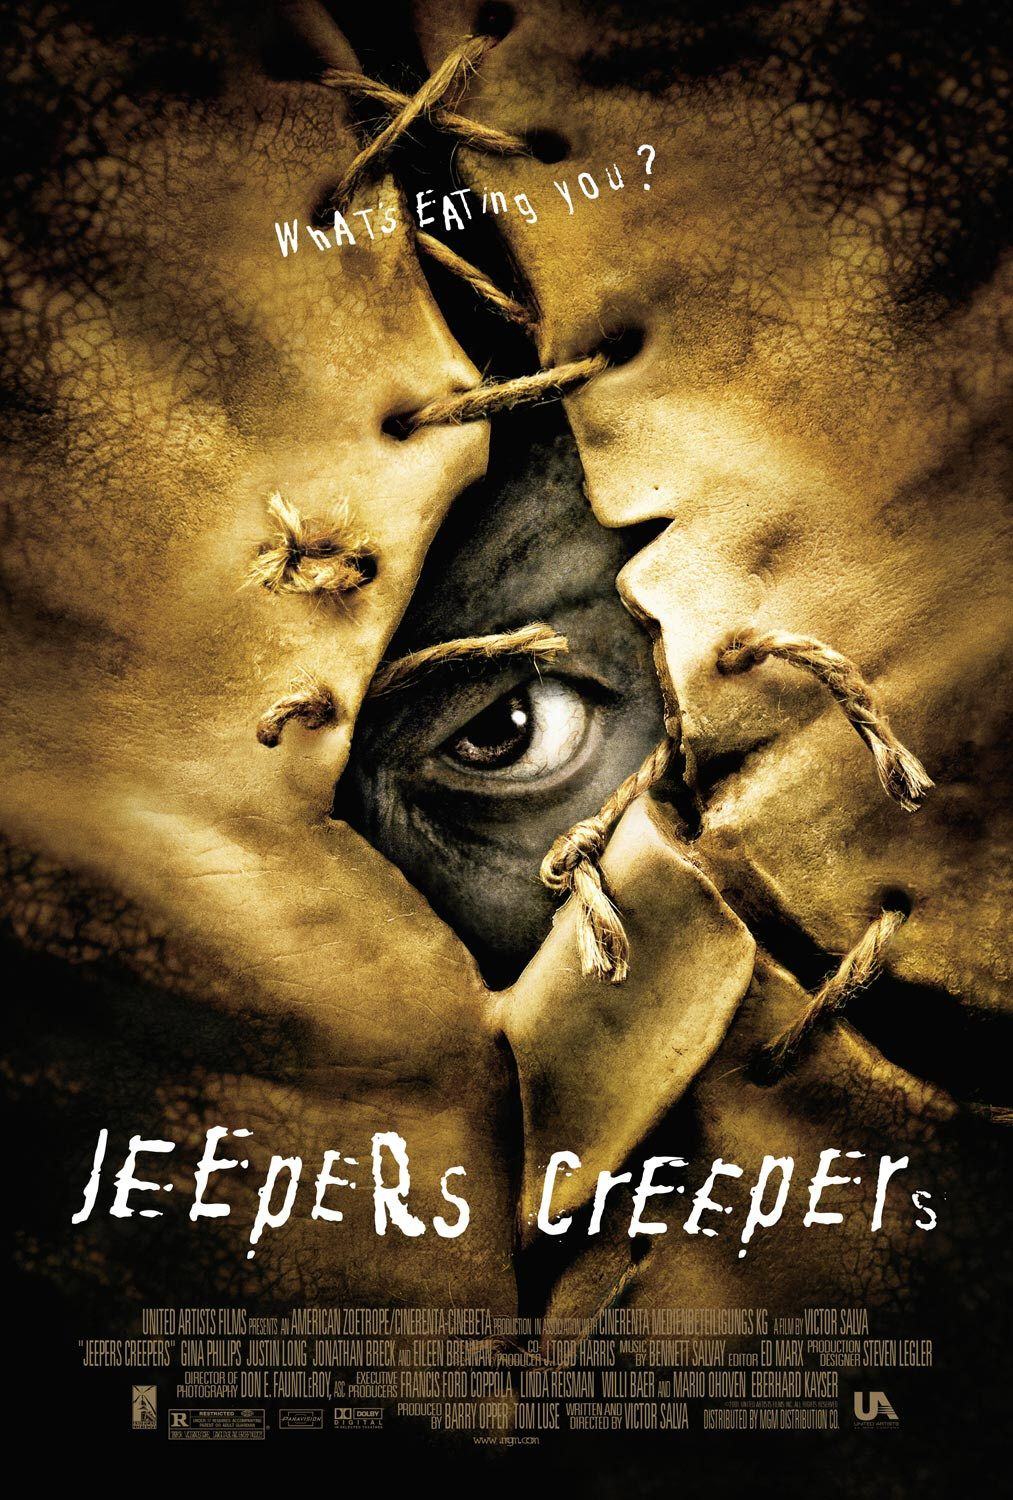 Jeepers Creepers  poster is copied by Creatures